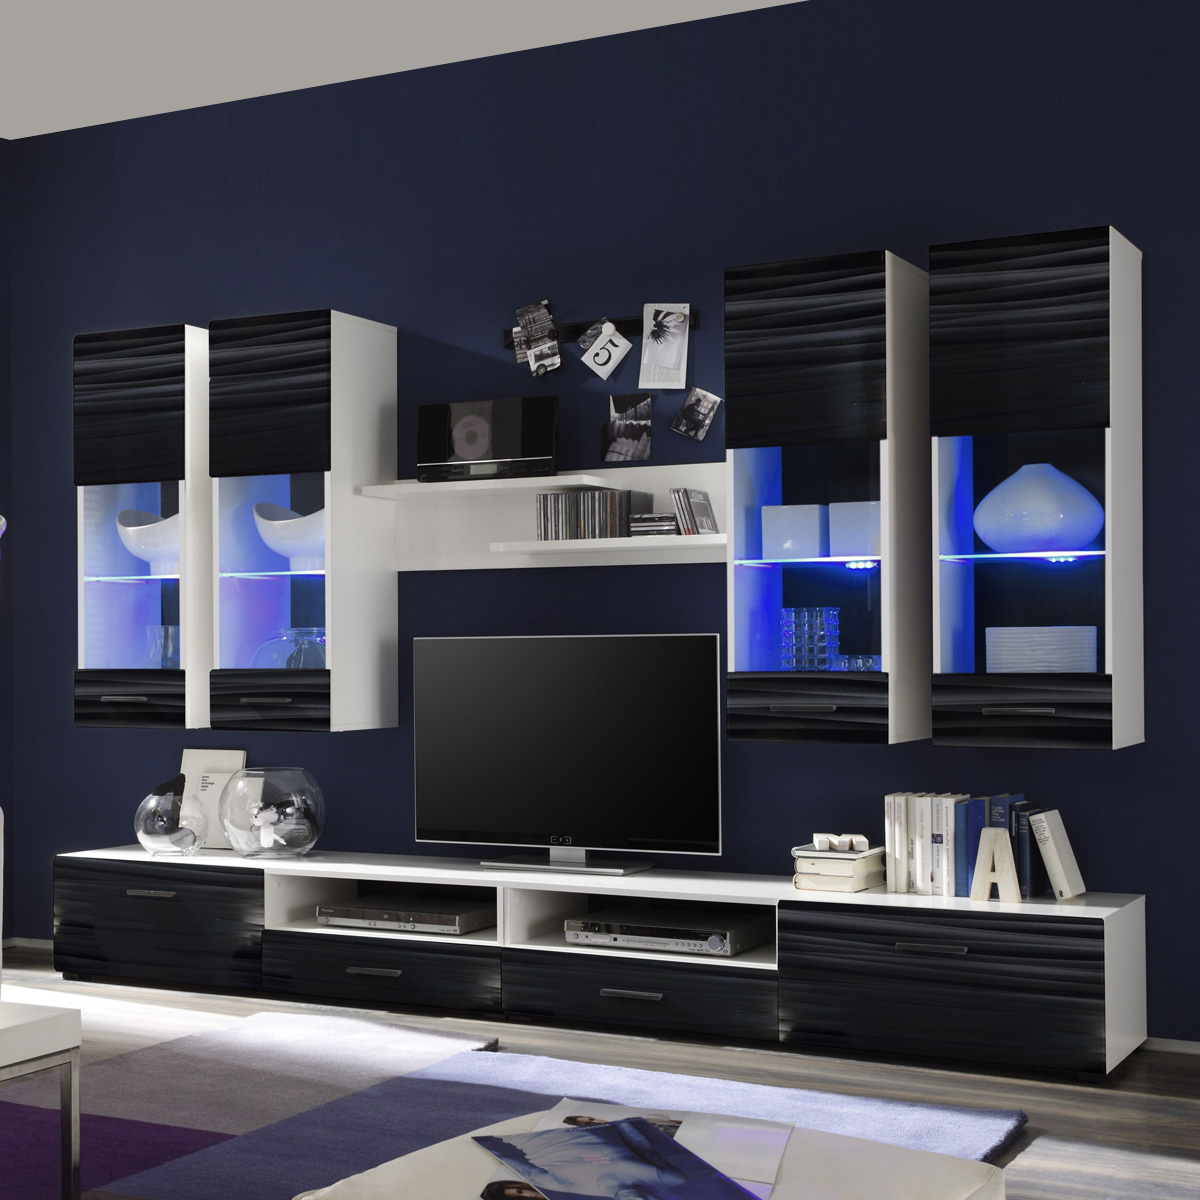 wohnwand attac 4 anbauwand wohnzimmer sahara schwarz 3d folie wei mit led eur 338 95. Black Bedroom Furniture Sets. Home Design Ideas